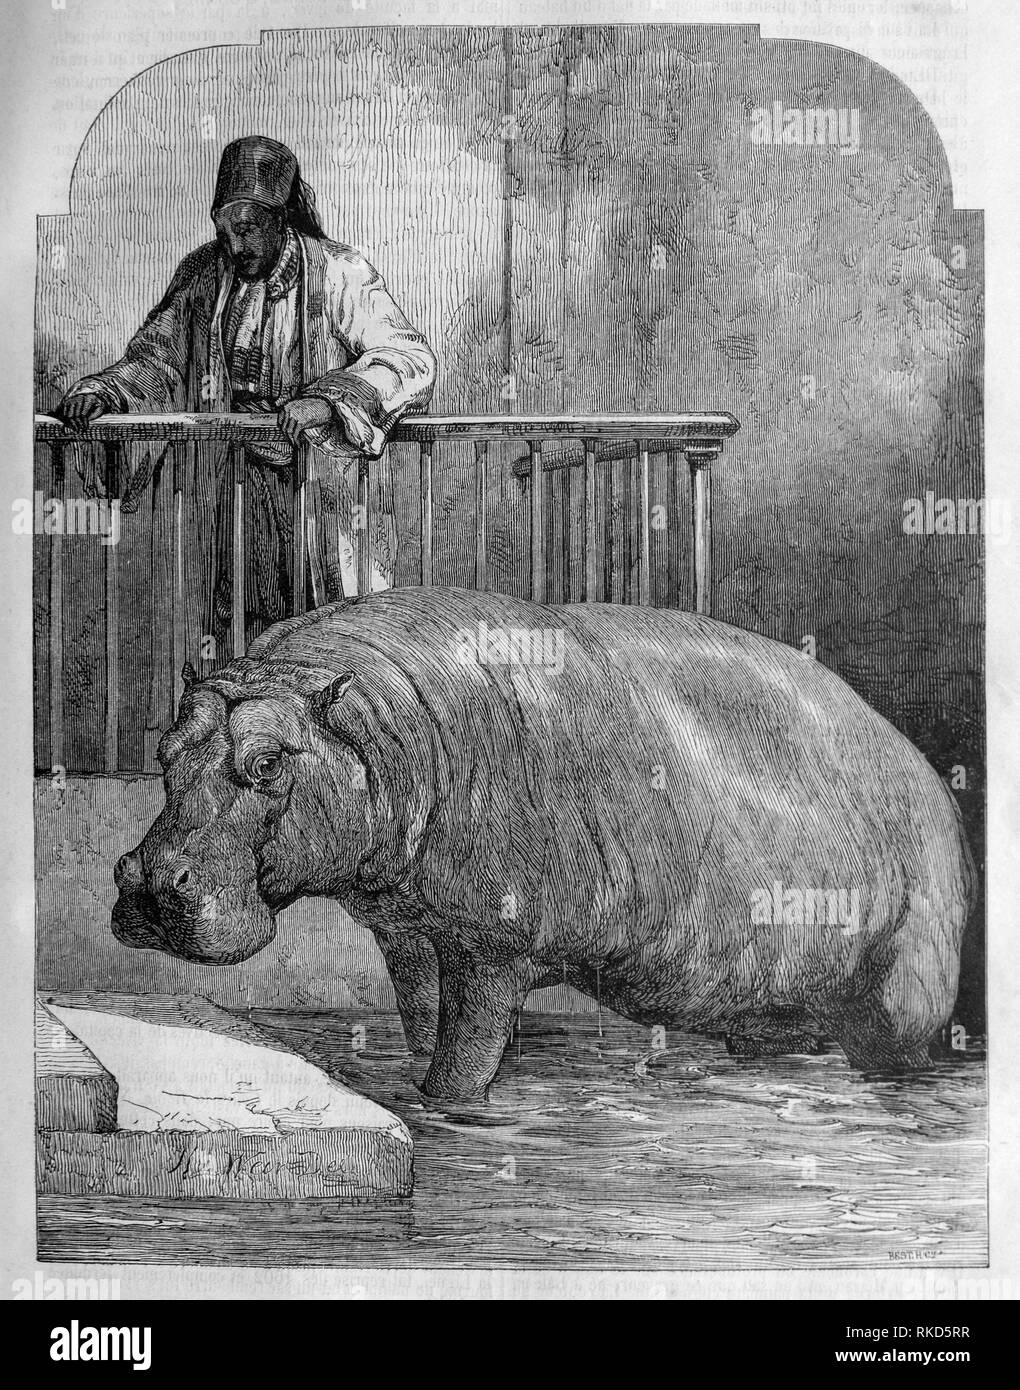 London Zoo - an hippopotamus. (drawing by Weir, 1853). London Zoo is the world's oldest scientific zoo. It was opened in London on 27 April 1828,and - Stock Image